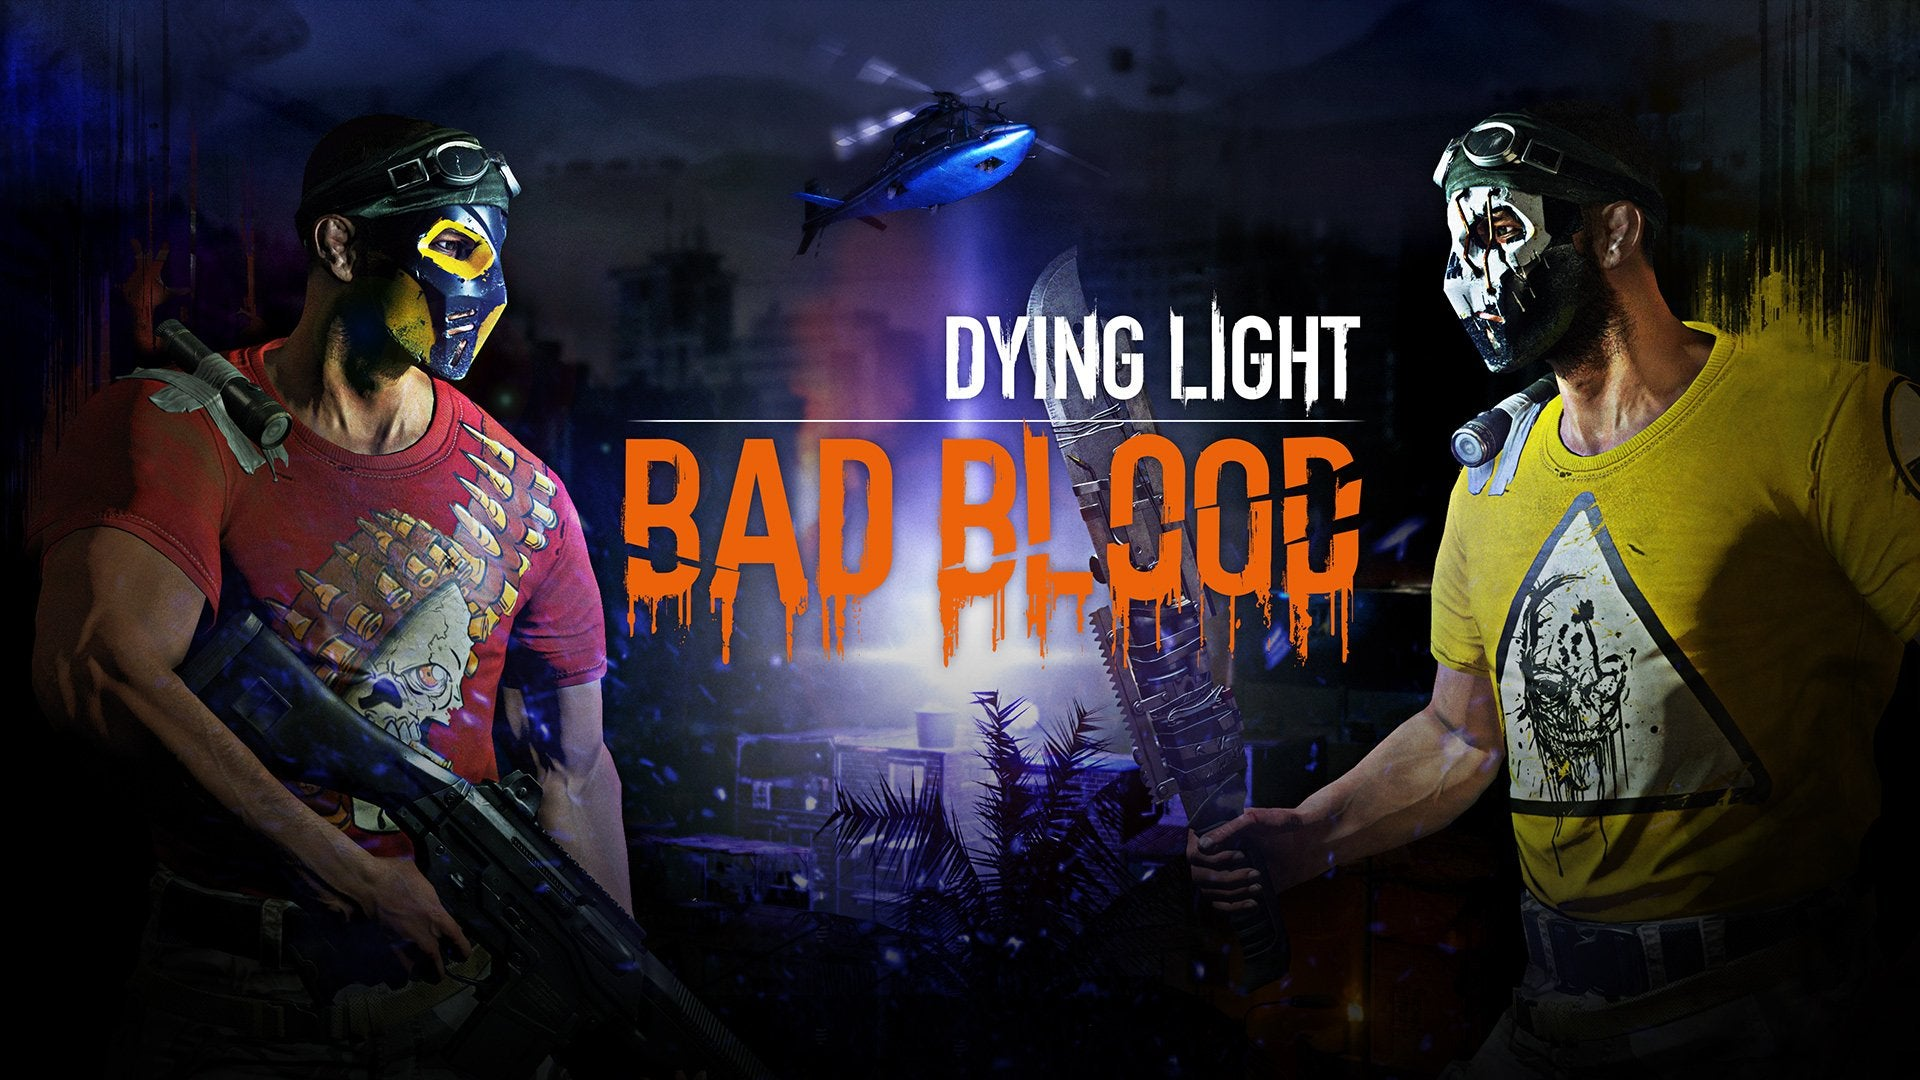 Dying light: bad blood is a standalone multiplayer expansion about.